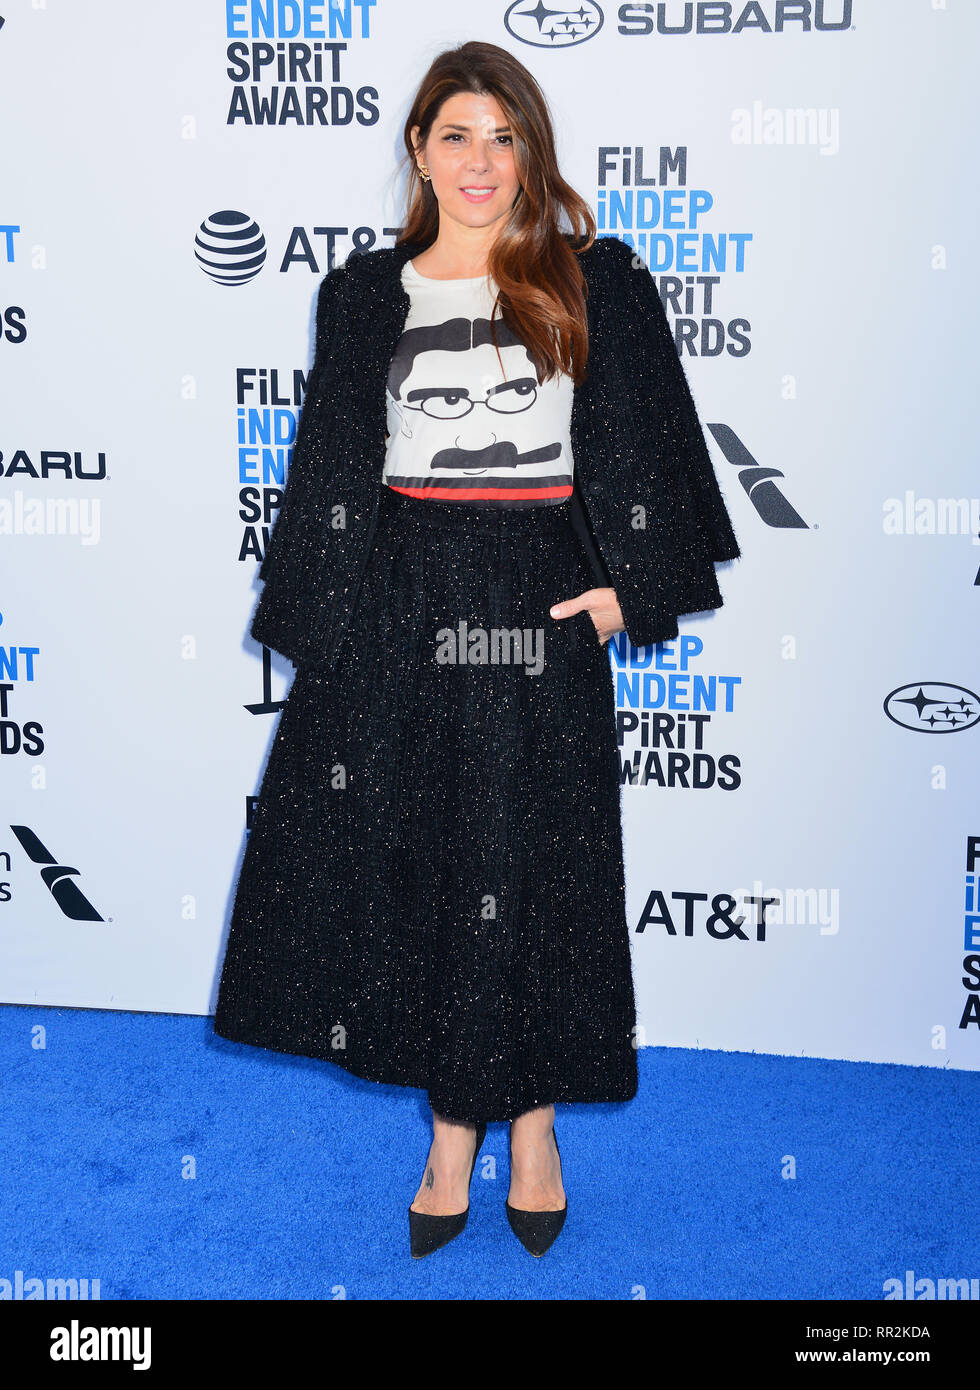 Santa Monica, California, USA. 23rd Feb, 2019. Marisa Tomei 009 attends the 2019 Film Independent Spirit Awards on February 23, 2019 in Santa Monica, California. Credit: Tsuni / USA/Alamy Live News - Stock Image